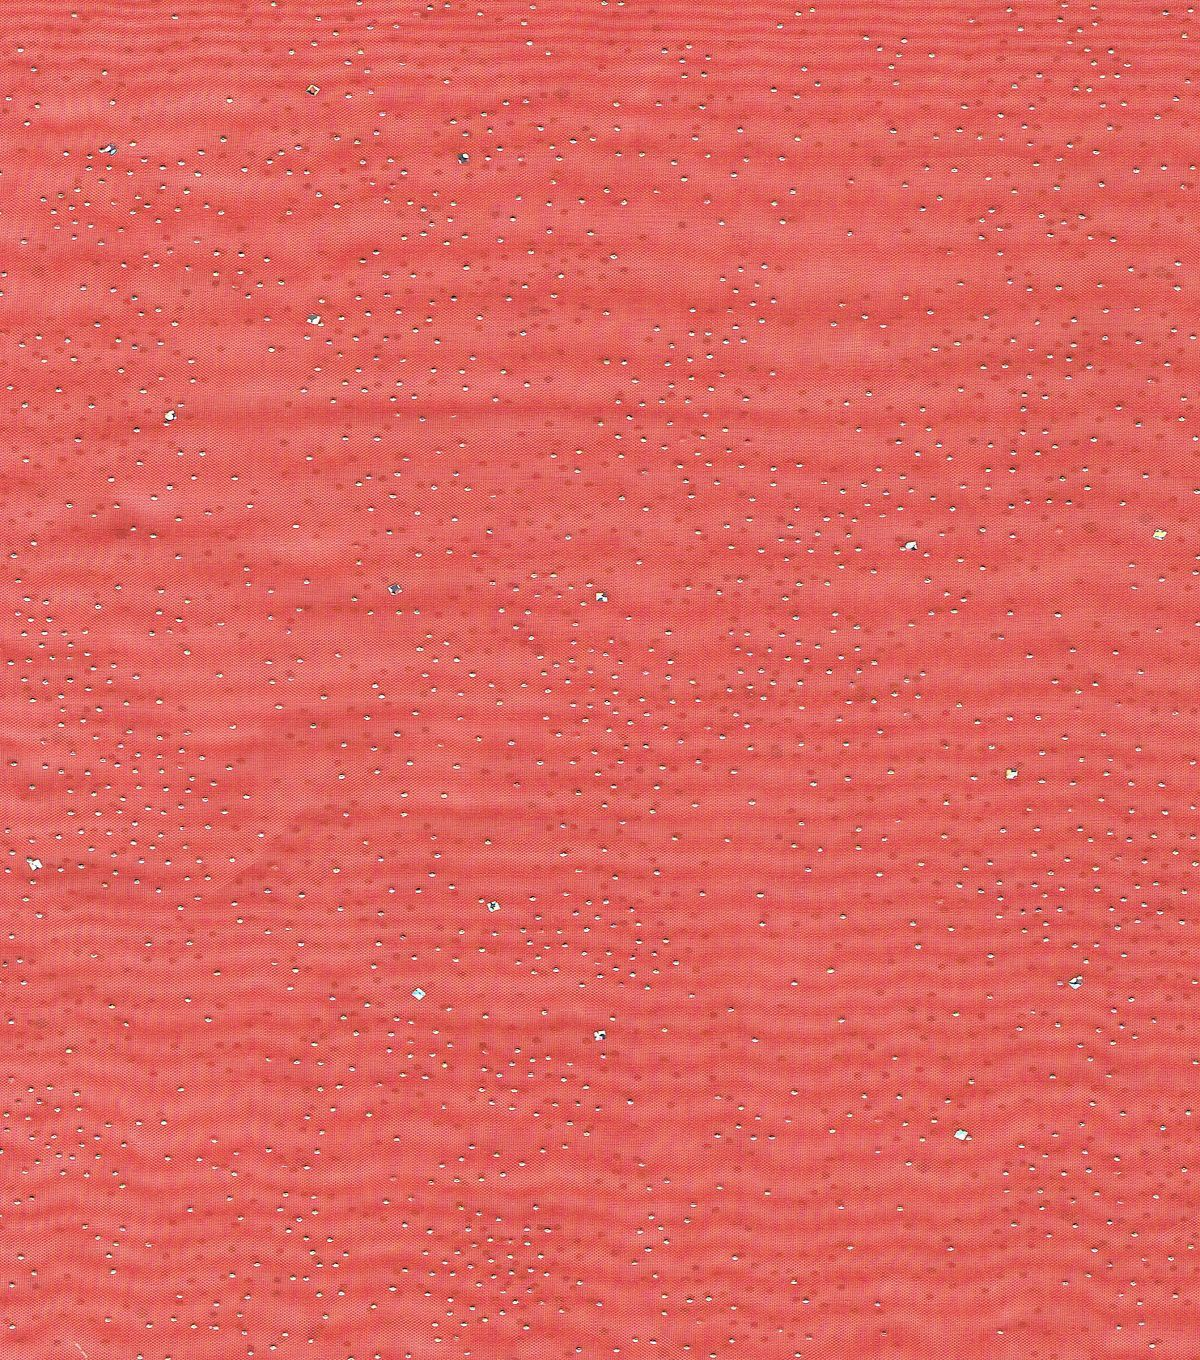 Logantex Casa Collection™ Fairy Dust Embellished Organza Fabric-Red